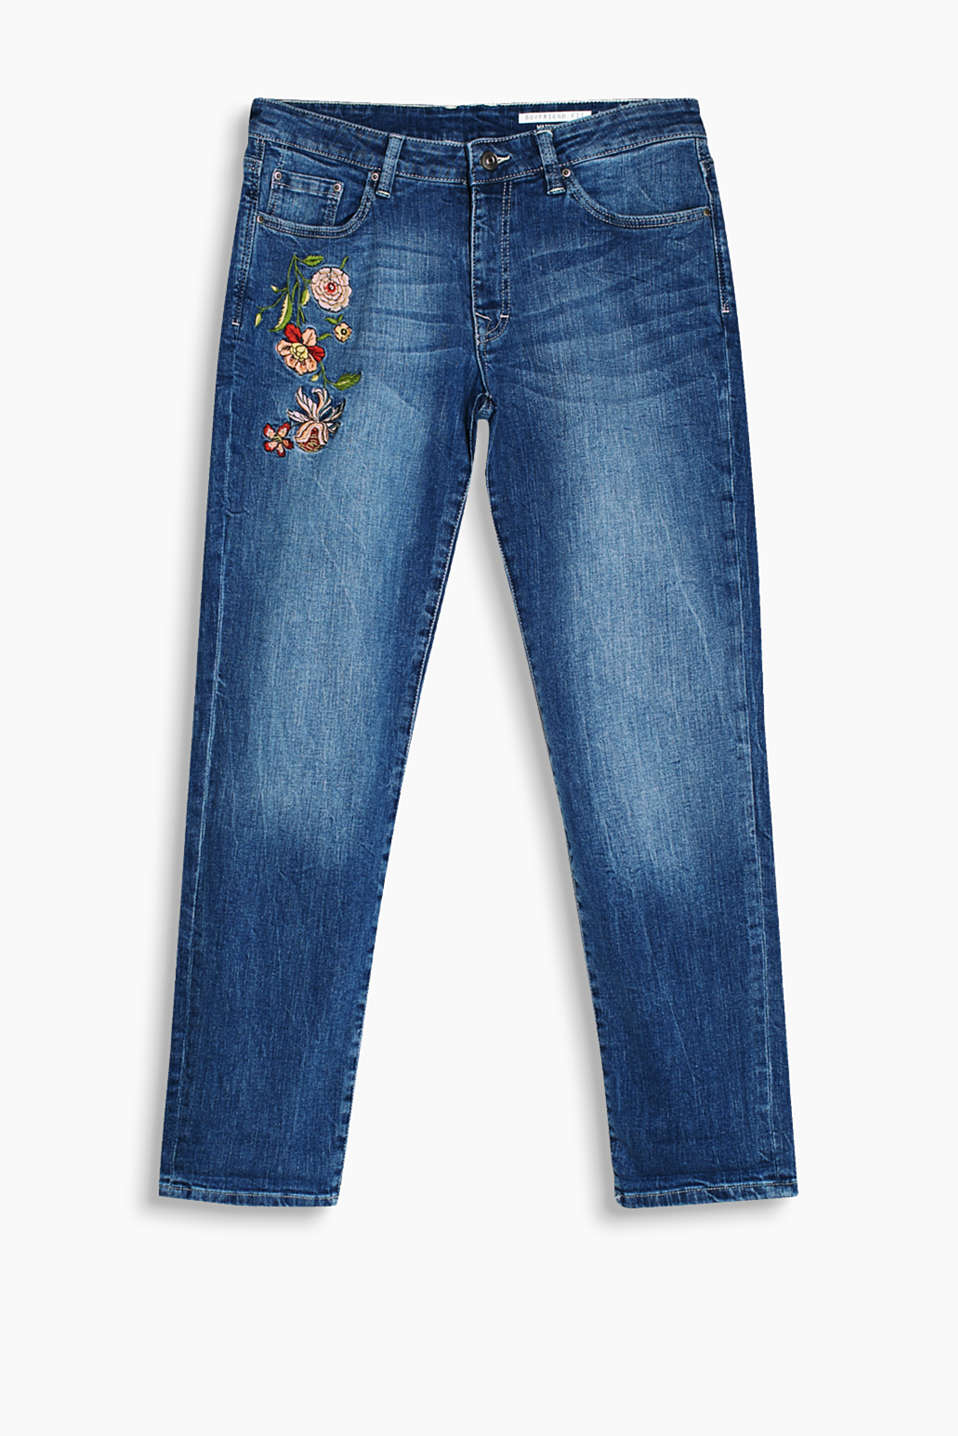 Elaborately embroidered, boyfriend jeans with an authentic, washed finish